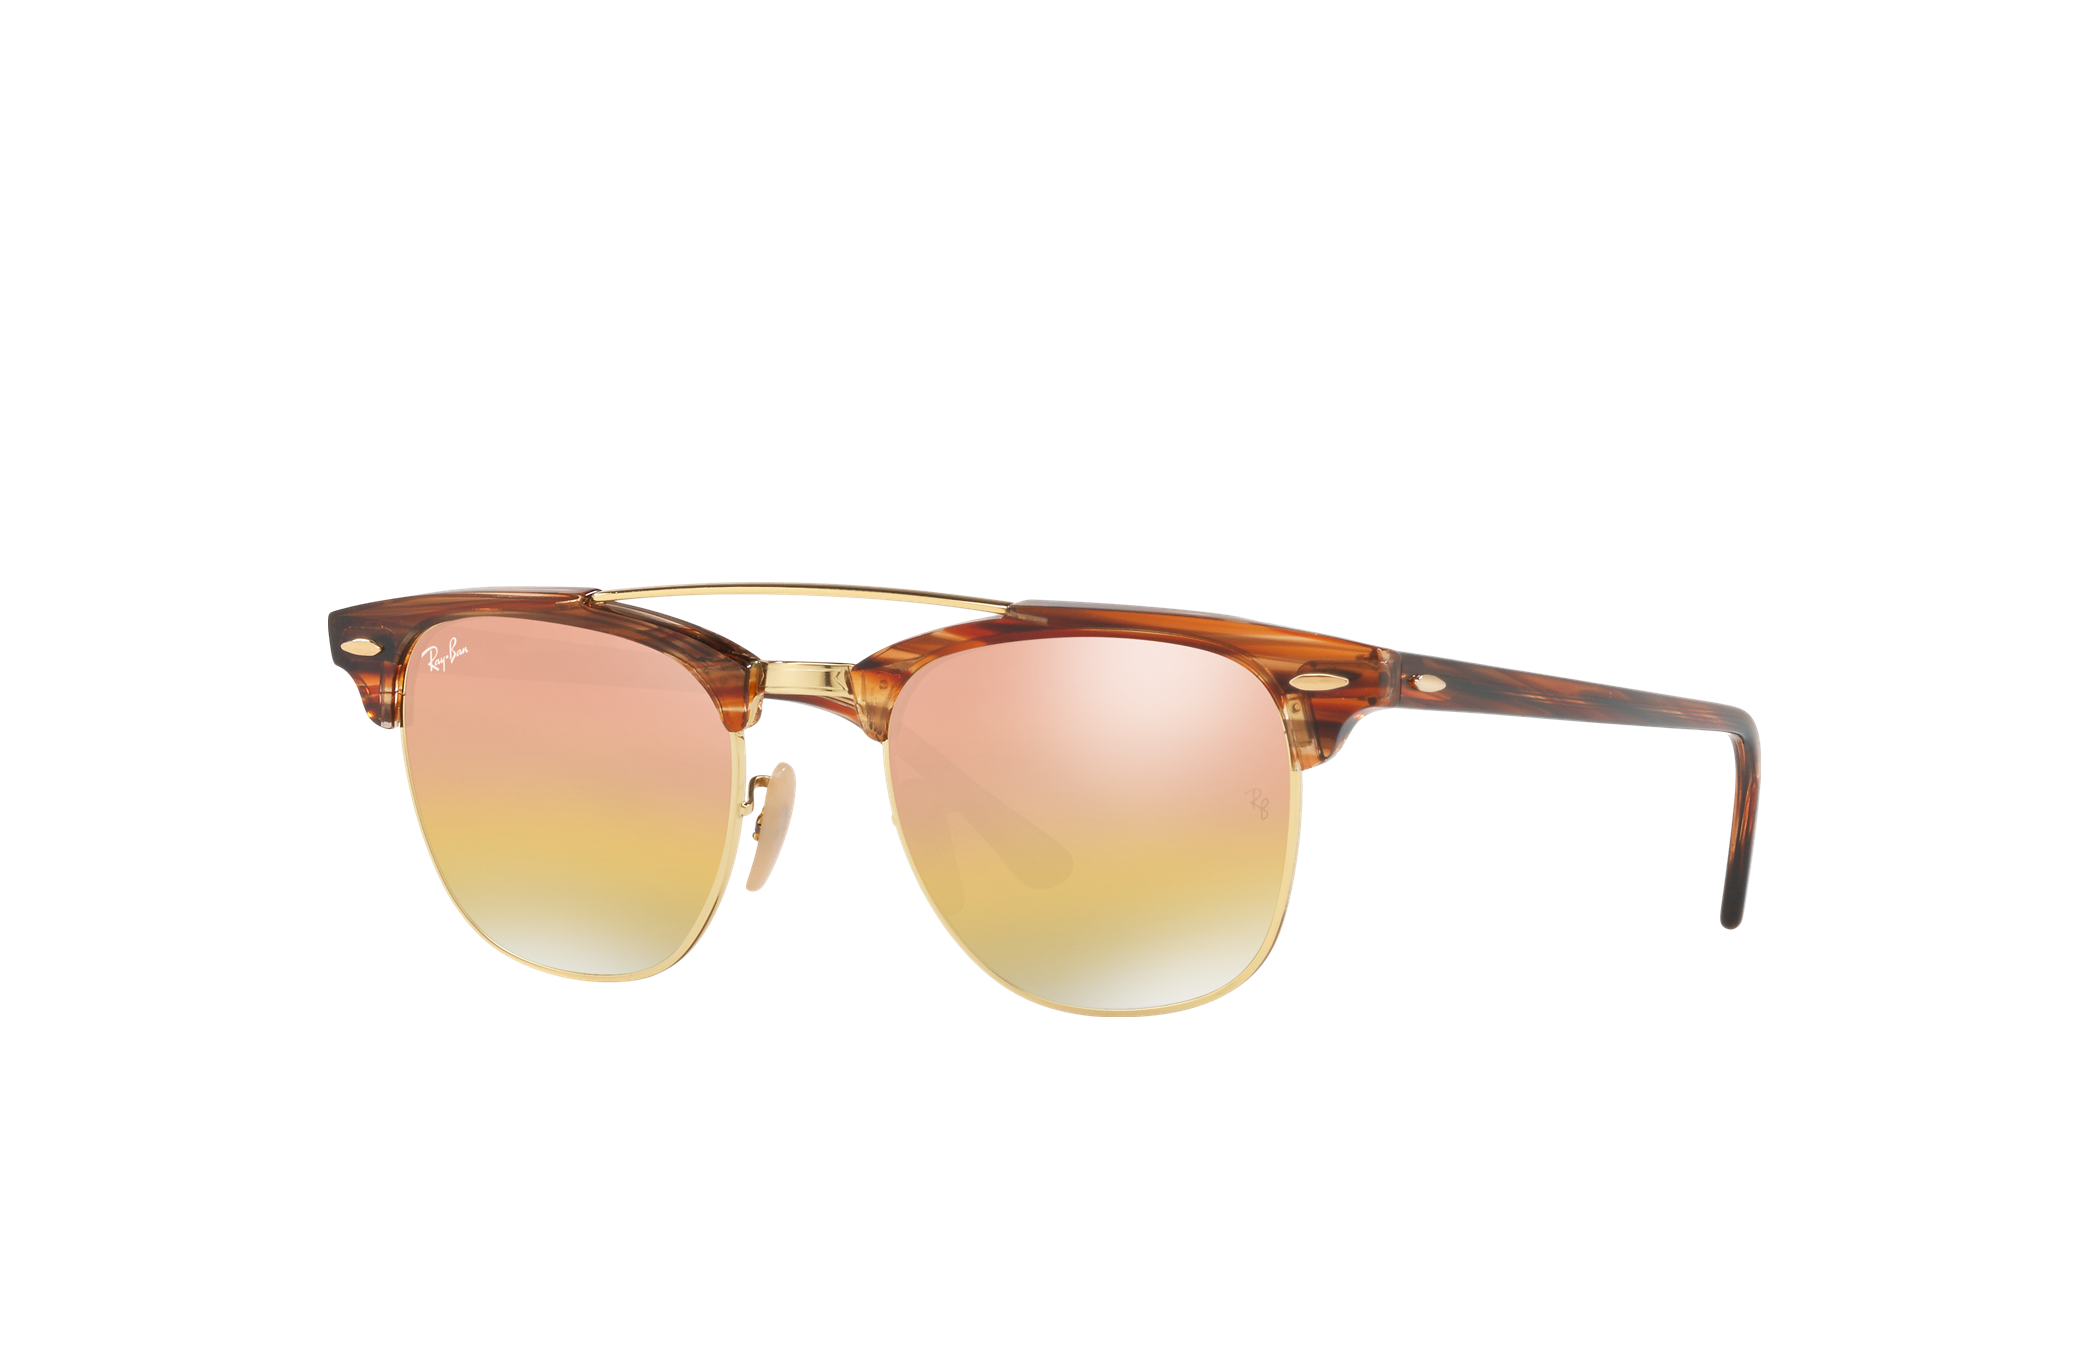 Ray-Ban Clubmaster Double Bridge Light Brown, Pink Lenses - RB3816